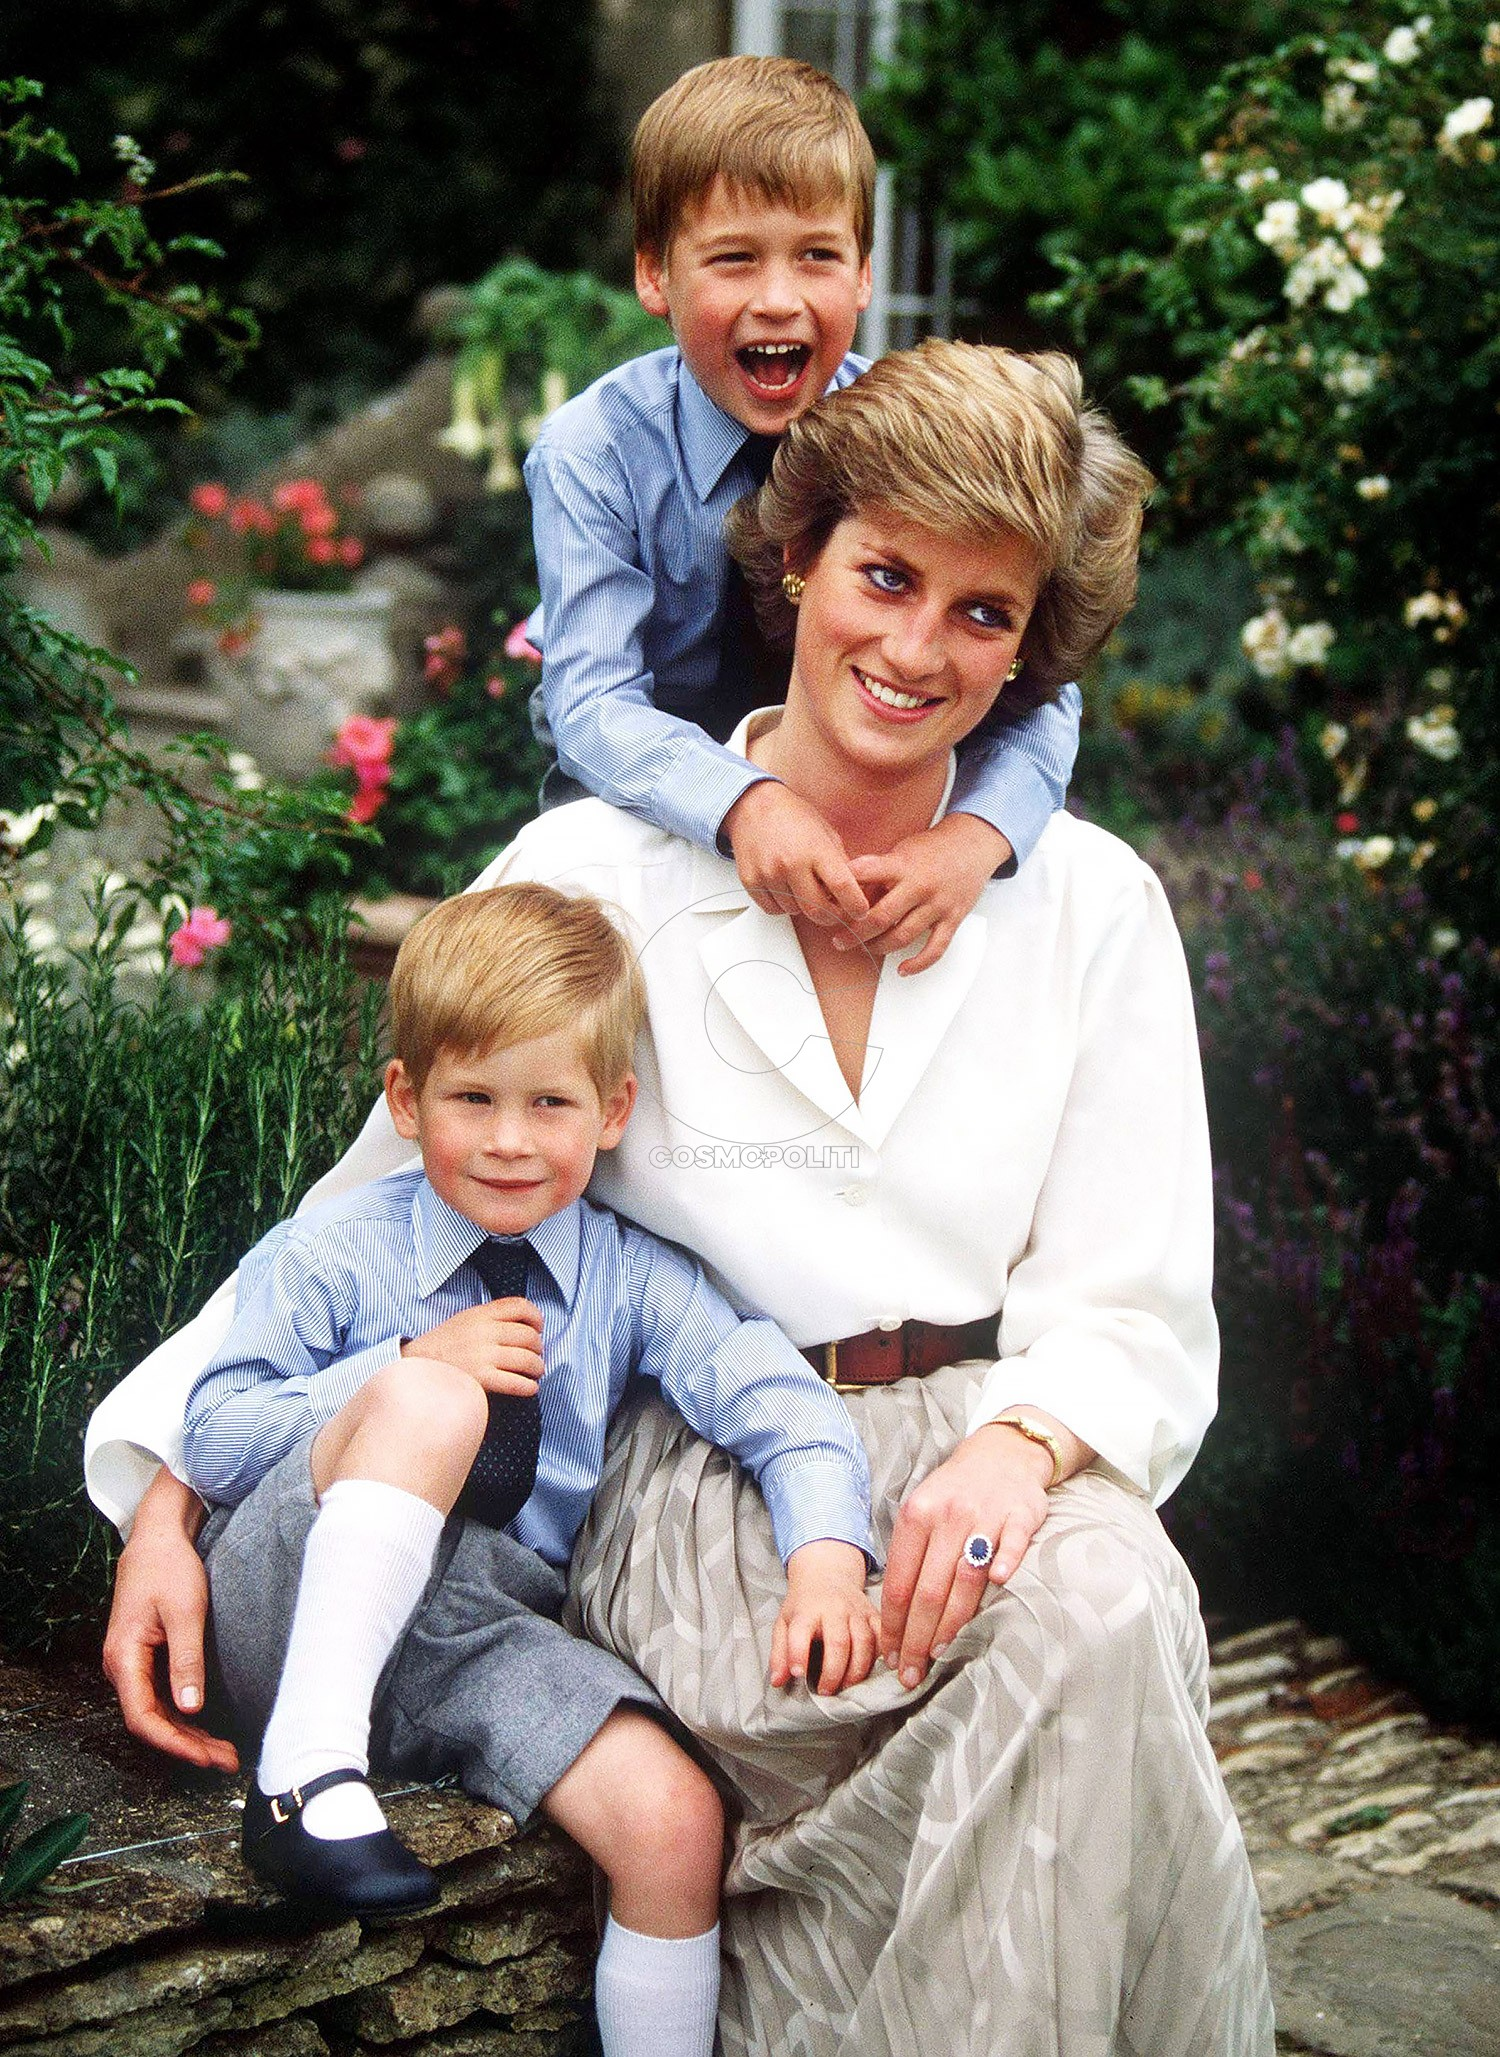 RGB 19213345 D 23646-04 NEW CREDIT: A.G. Carrick/DIANA MEMORIAL FUND/ GETTY (collection recently sold to getty 5/07) Princess of Wales and sons, Prince William and Prince Harry. Obligatory Credit - CAMERA PRESS/A.G. Carrick/Diana Memorial Fund. SPECIAL PRICE APPLIES - CONSULT CAMERA PRESS OR ITS LOCAL AGENT. Official portrait of Britain's HRH The Princess of Wales with sons, Princess William (older) and Prince Harry at home in Highgrove, Gloucestershire, in August 1988, on the occasion of Prince Charles' 40th birthday. Princess Diana died in a car crash in Paris on August 31 1997. See Also: RCOD 332 and D 23645 1988 *** USA ONLY *** Prince William & Prince Harry & Princess Diana Princess Diana Retrospective